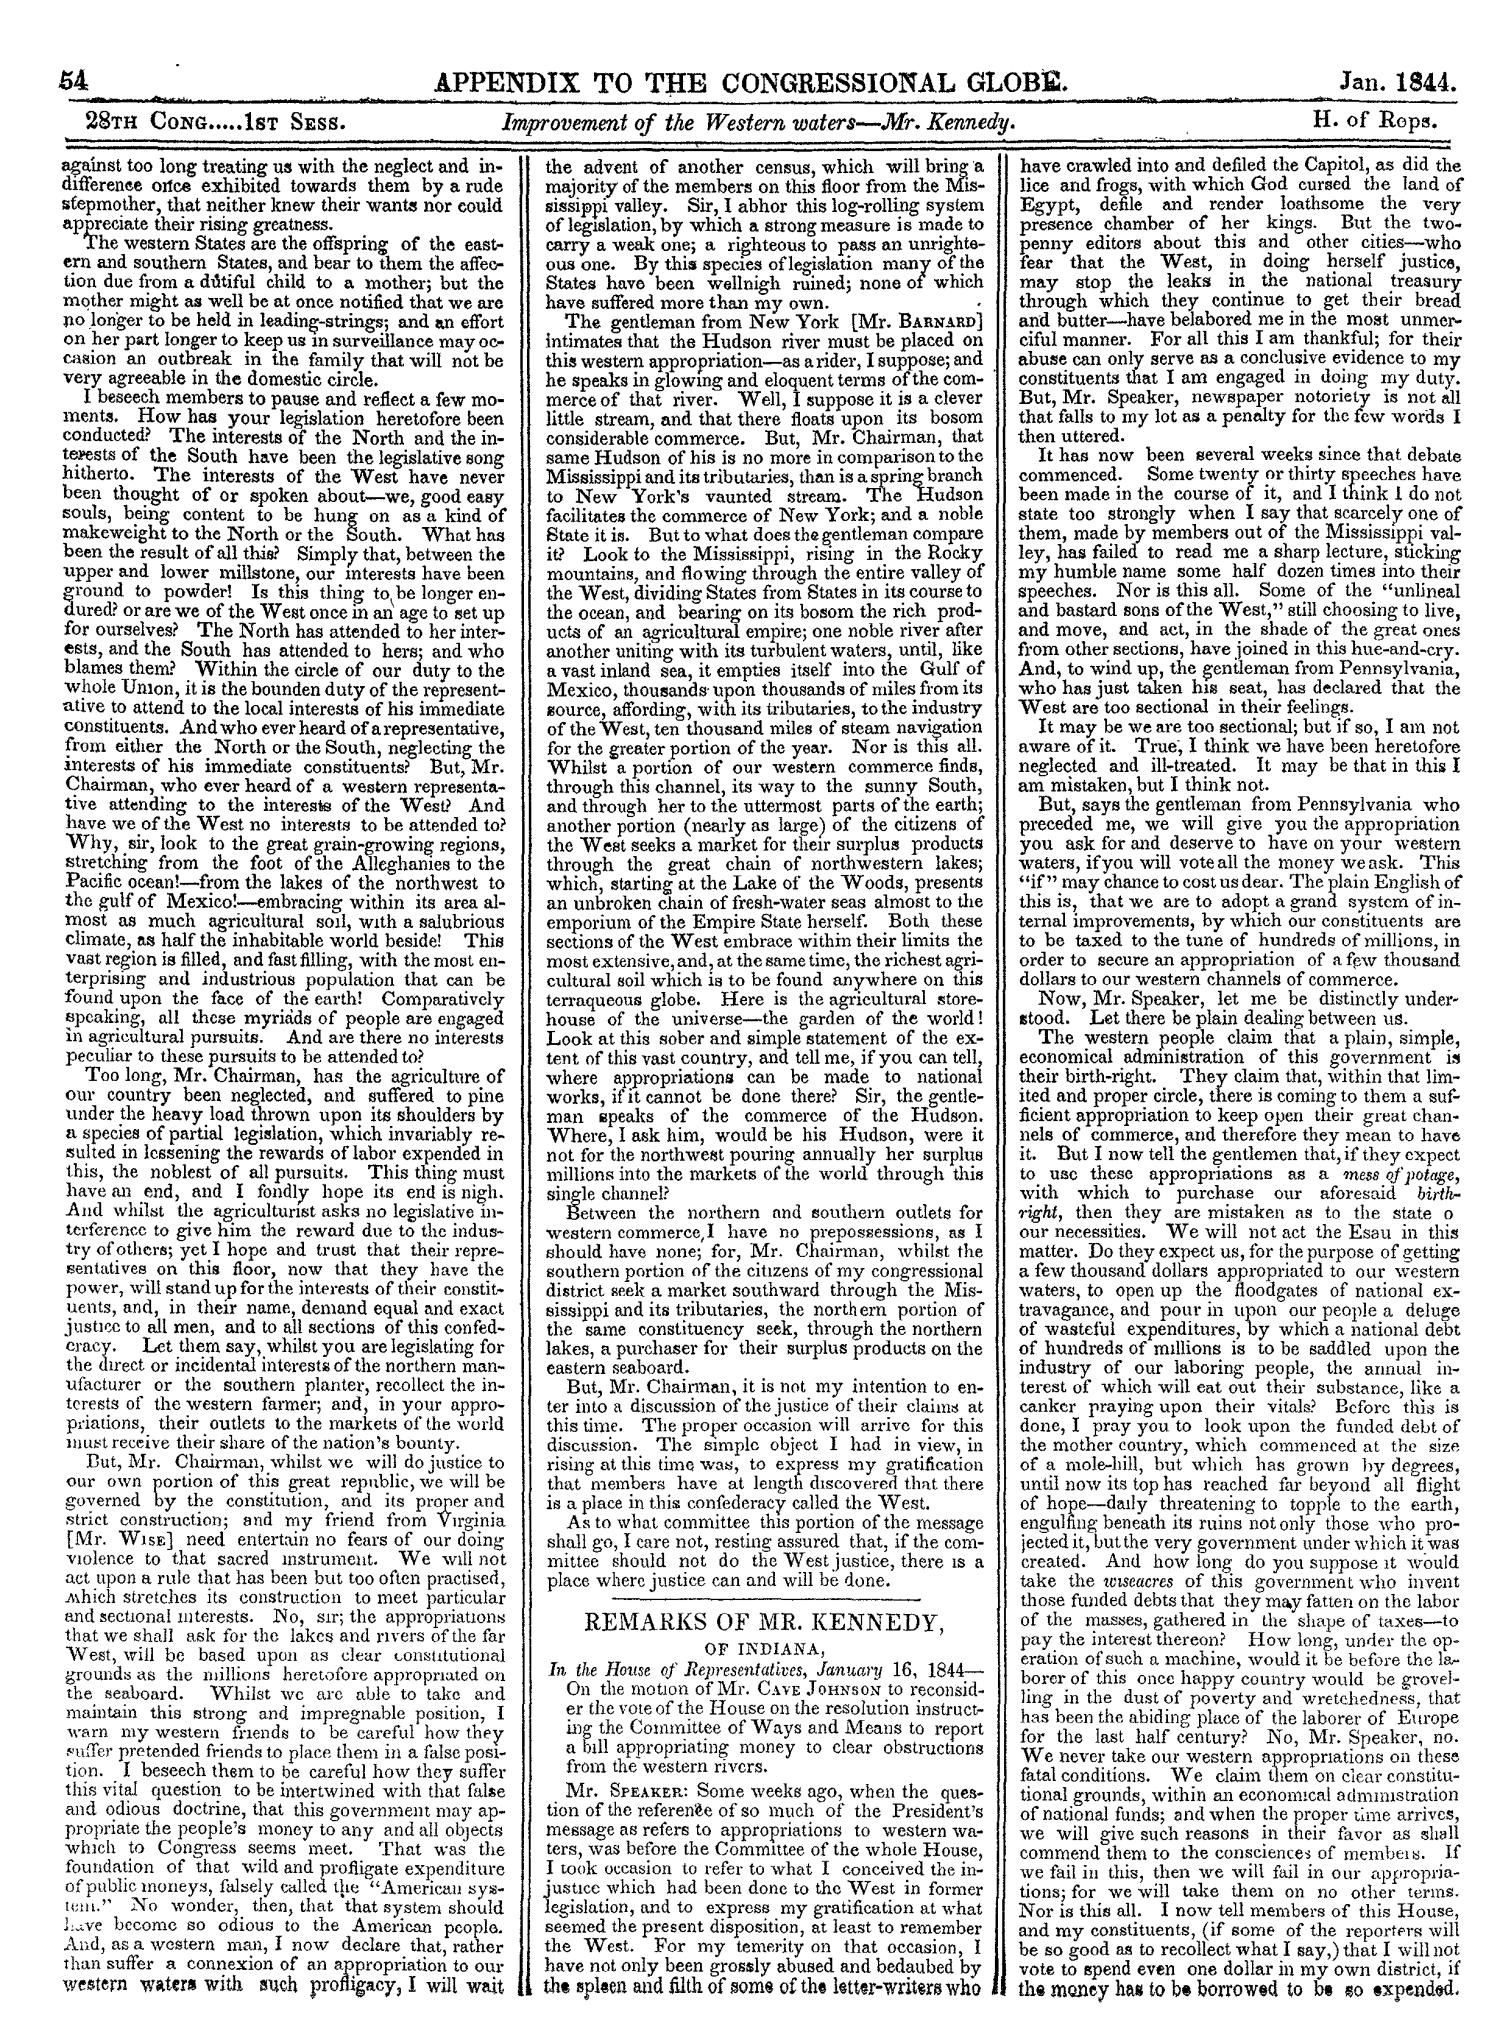 The Congressional Globe, Volume 13, Part 2: Twenty-Eighth Congress, First Session                                                                                                      54